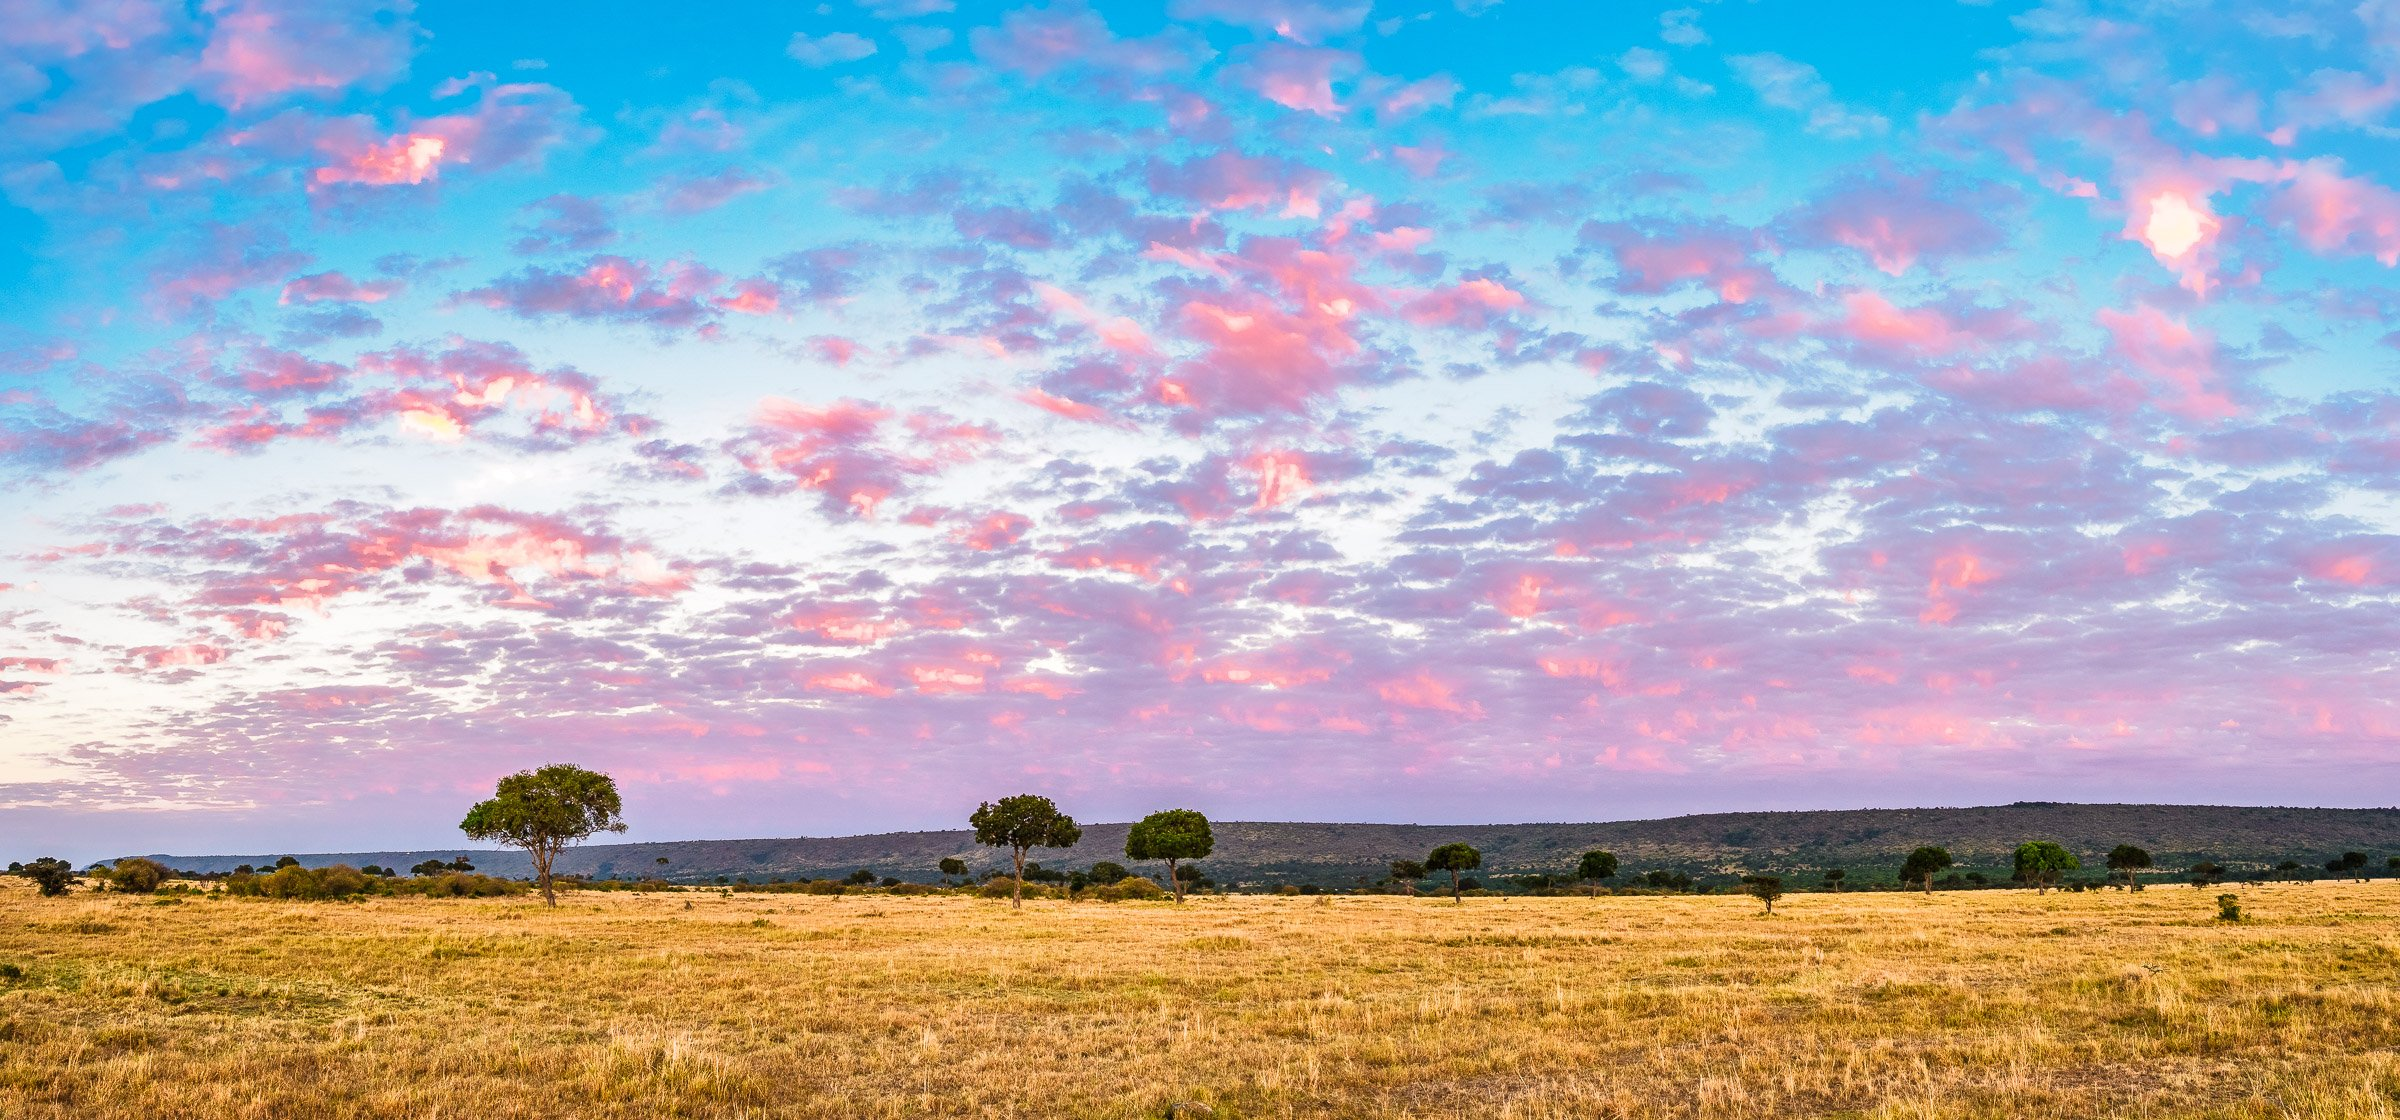 Pink Puffy Clouds Over the Golden Grasses of the Masai Mara, Kenya